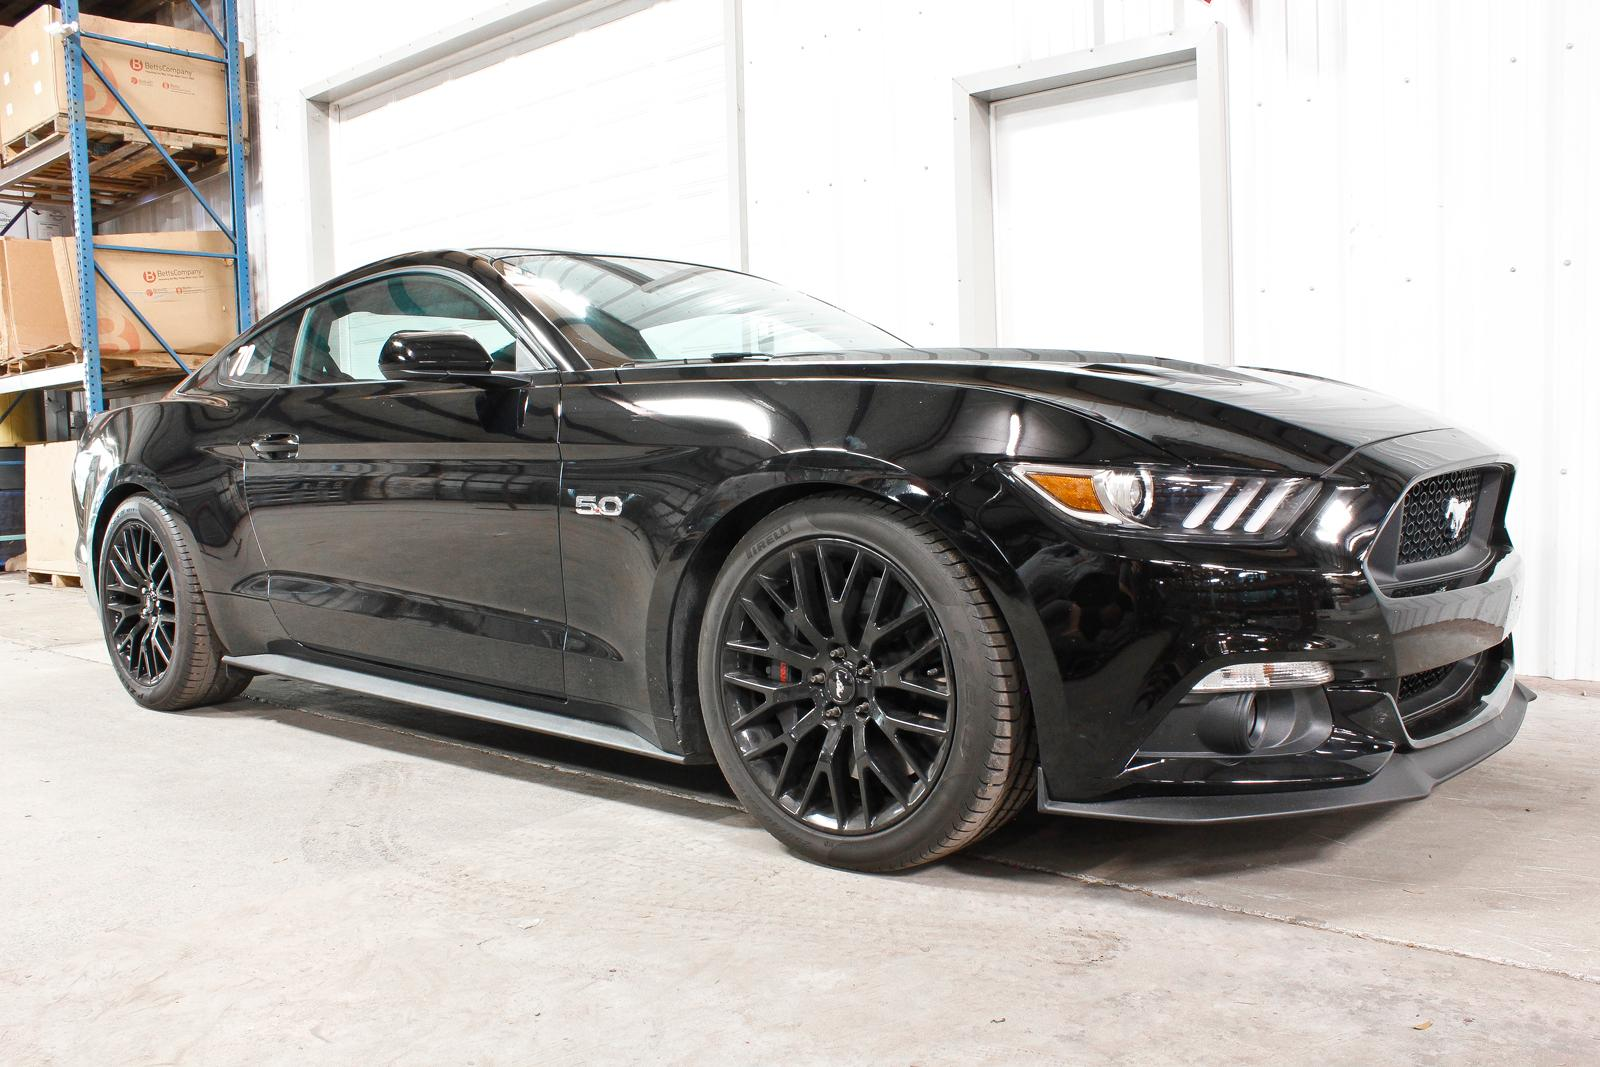 Grand National Car 2015 >> BMR Suspension SP081 - Lowering Springs, Front, Performance - 2015-2018 Mustang